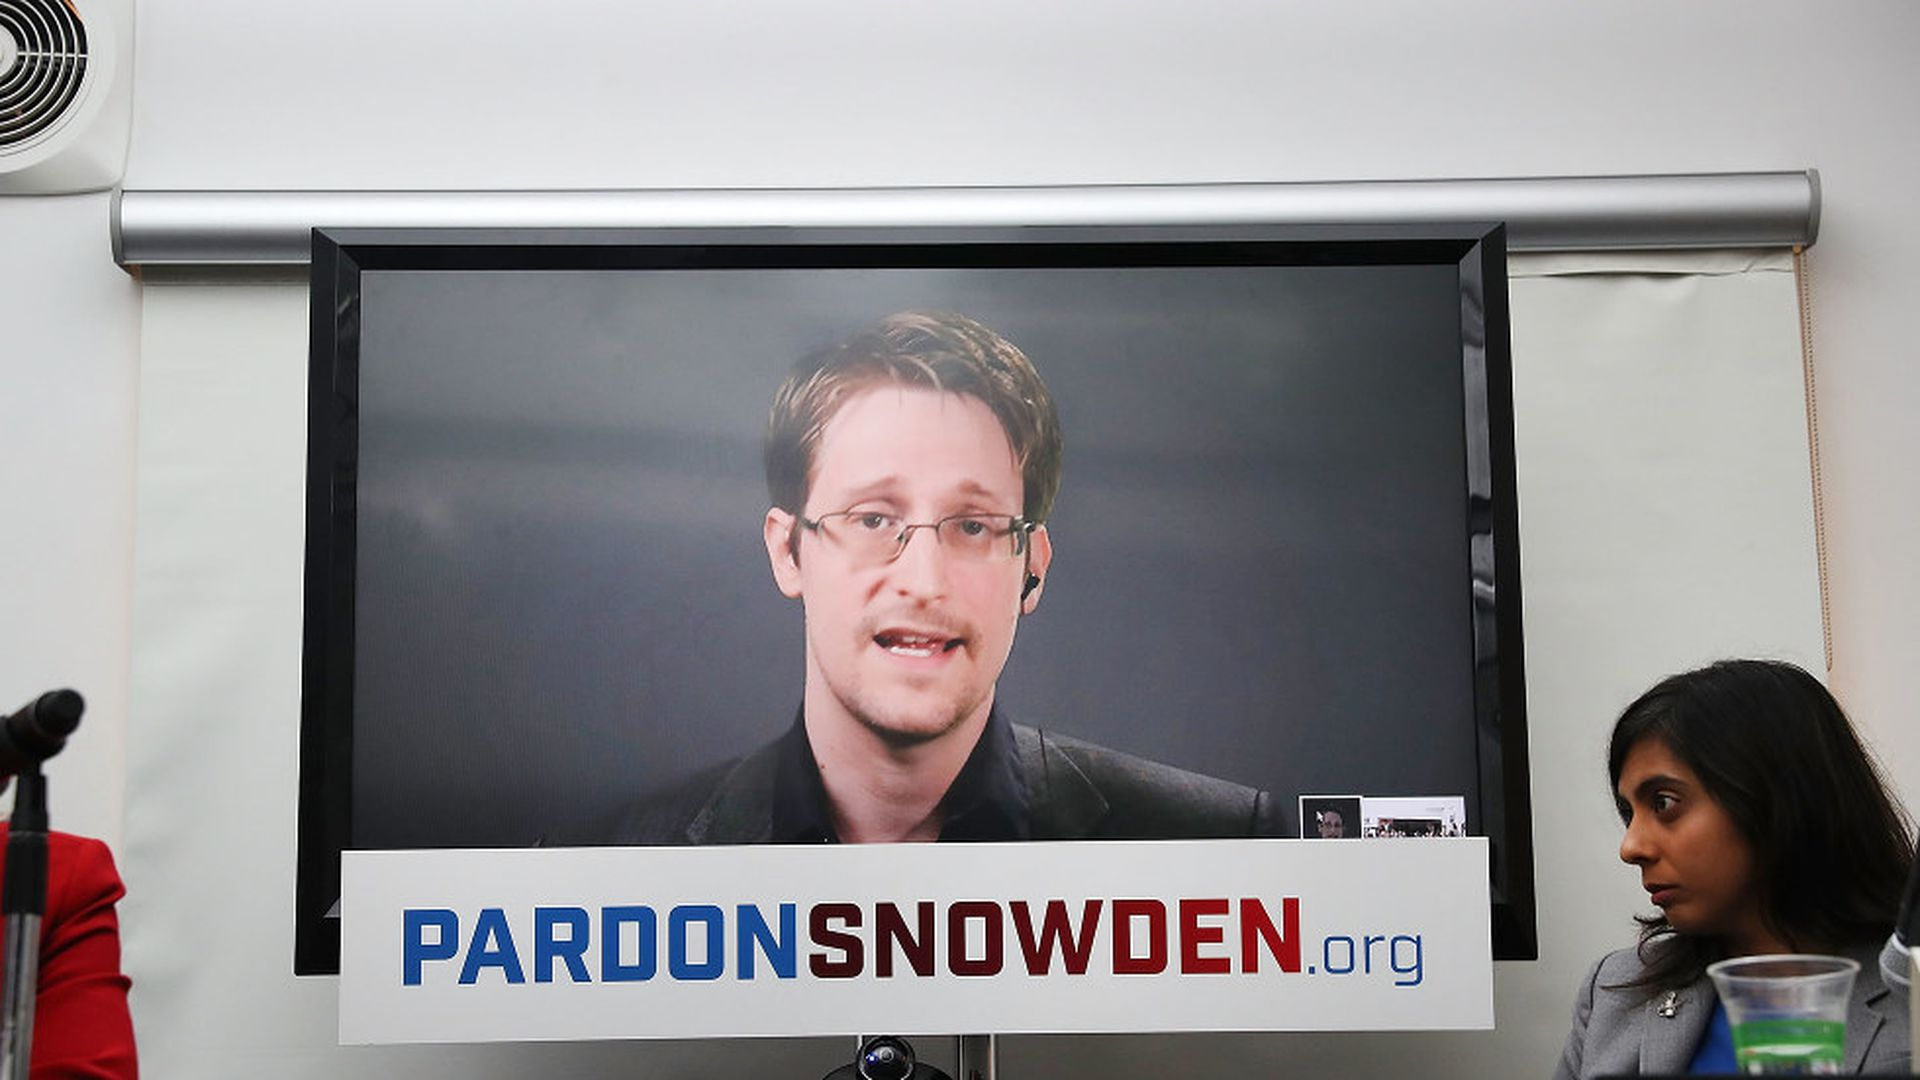 Edward Snowden launched a laptop security app